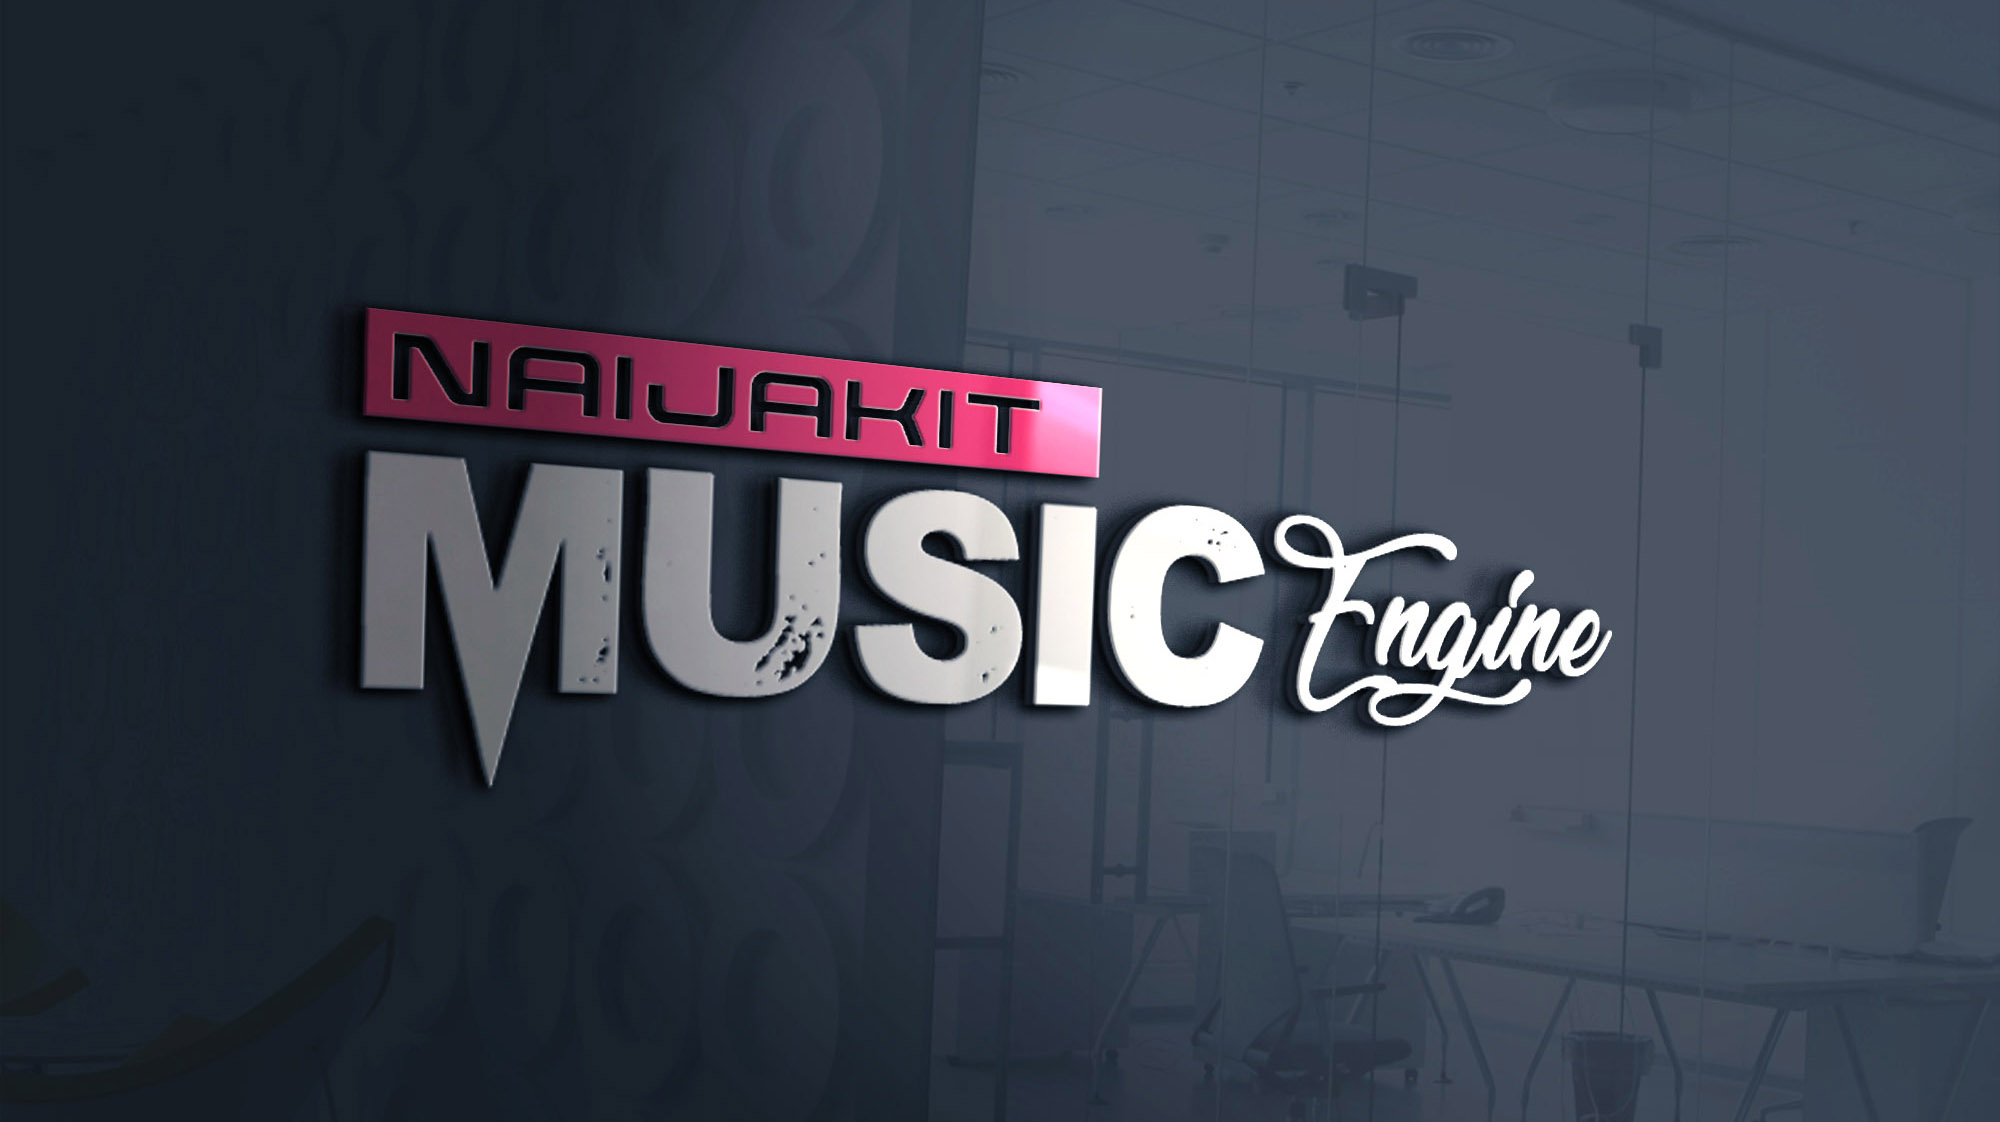 ALL Artists: You Can now UPLOAD your Songs on Naijakit Music Engine